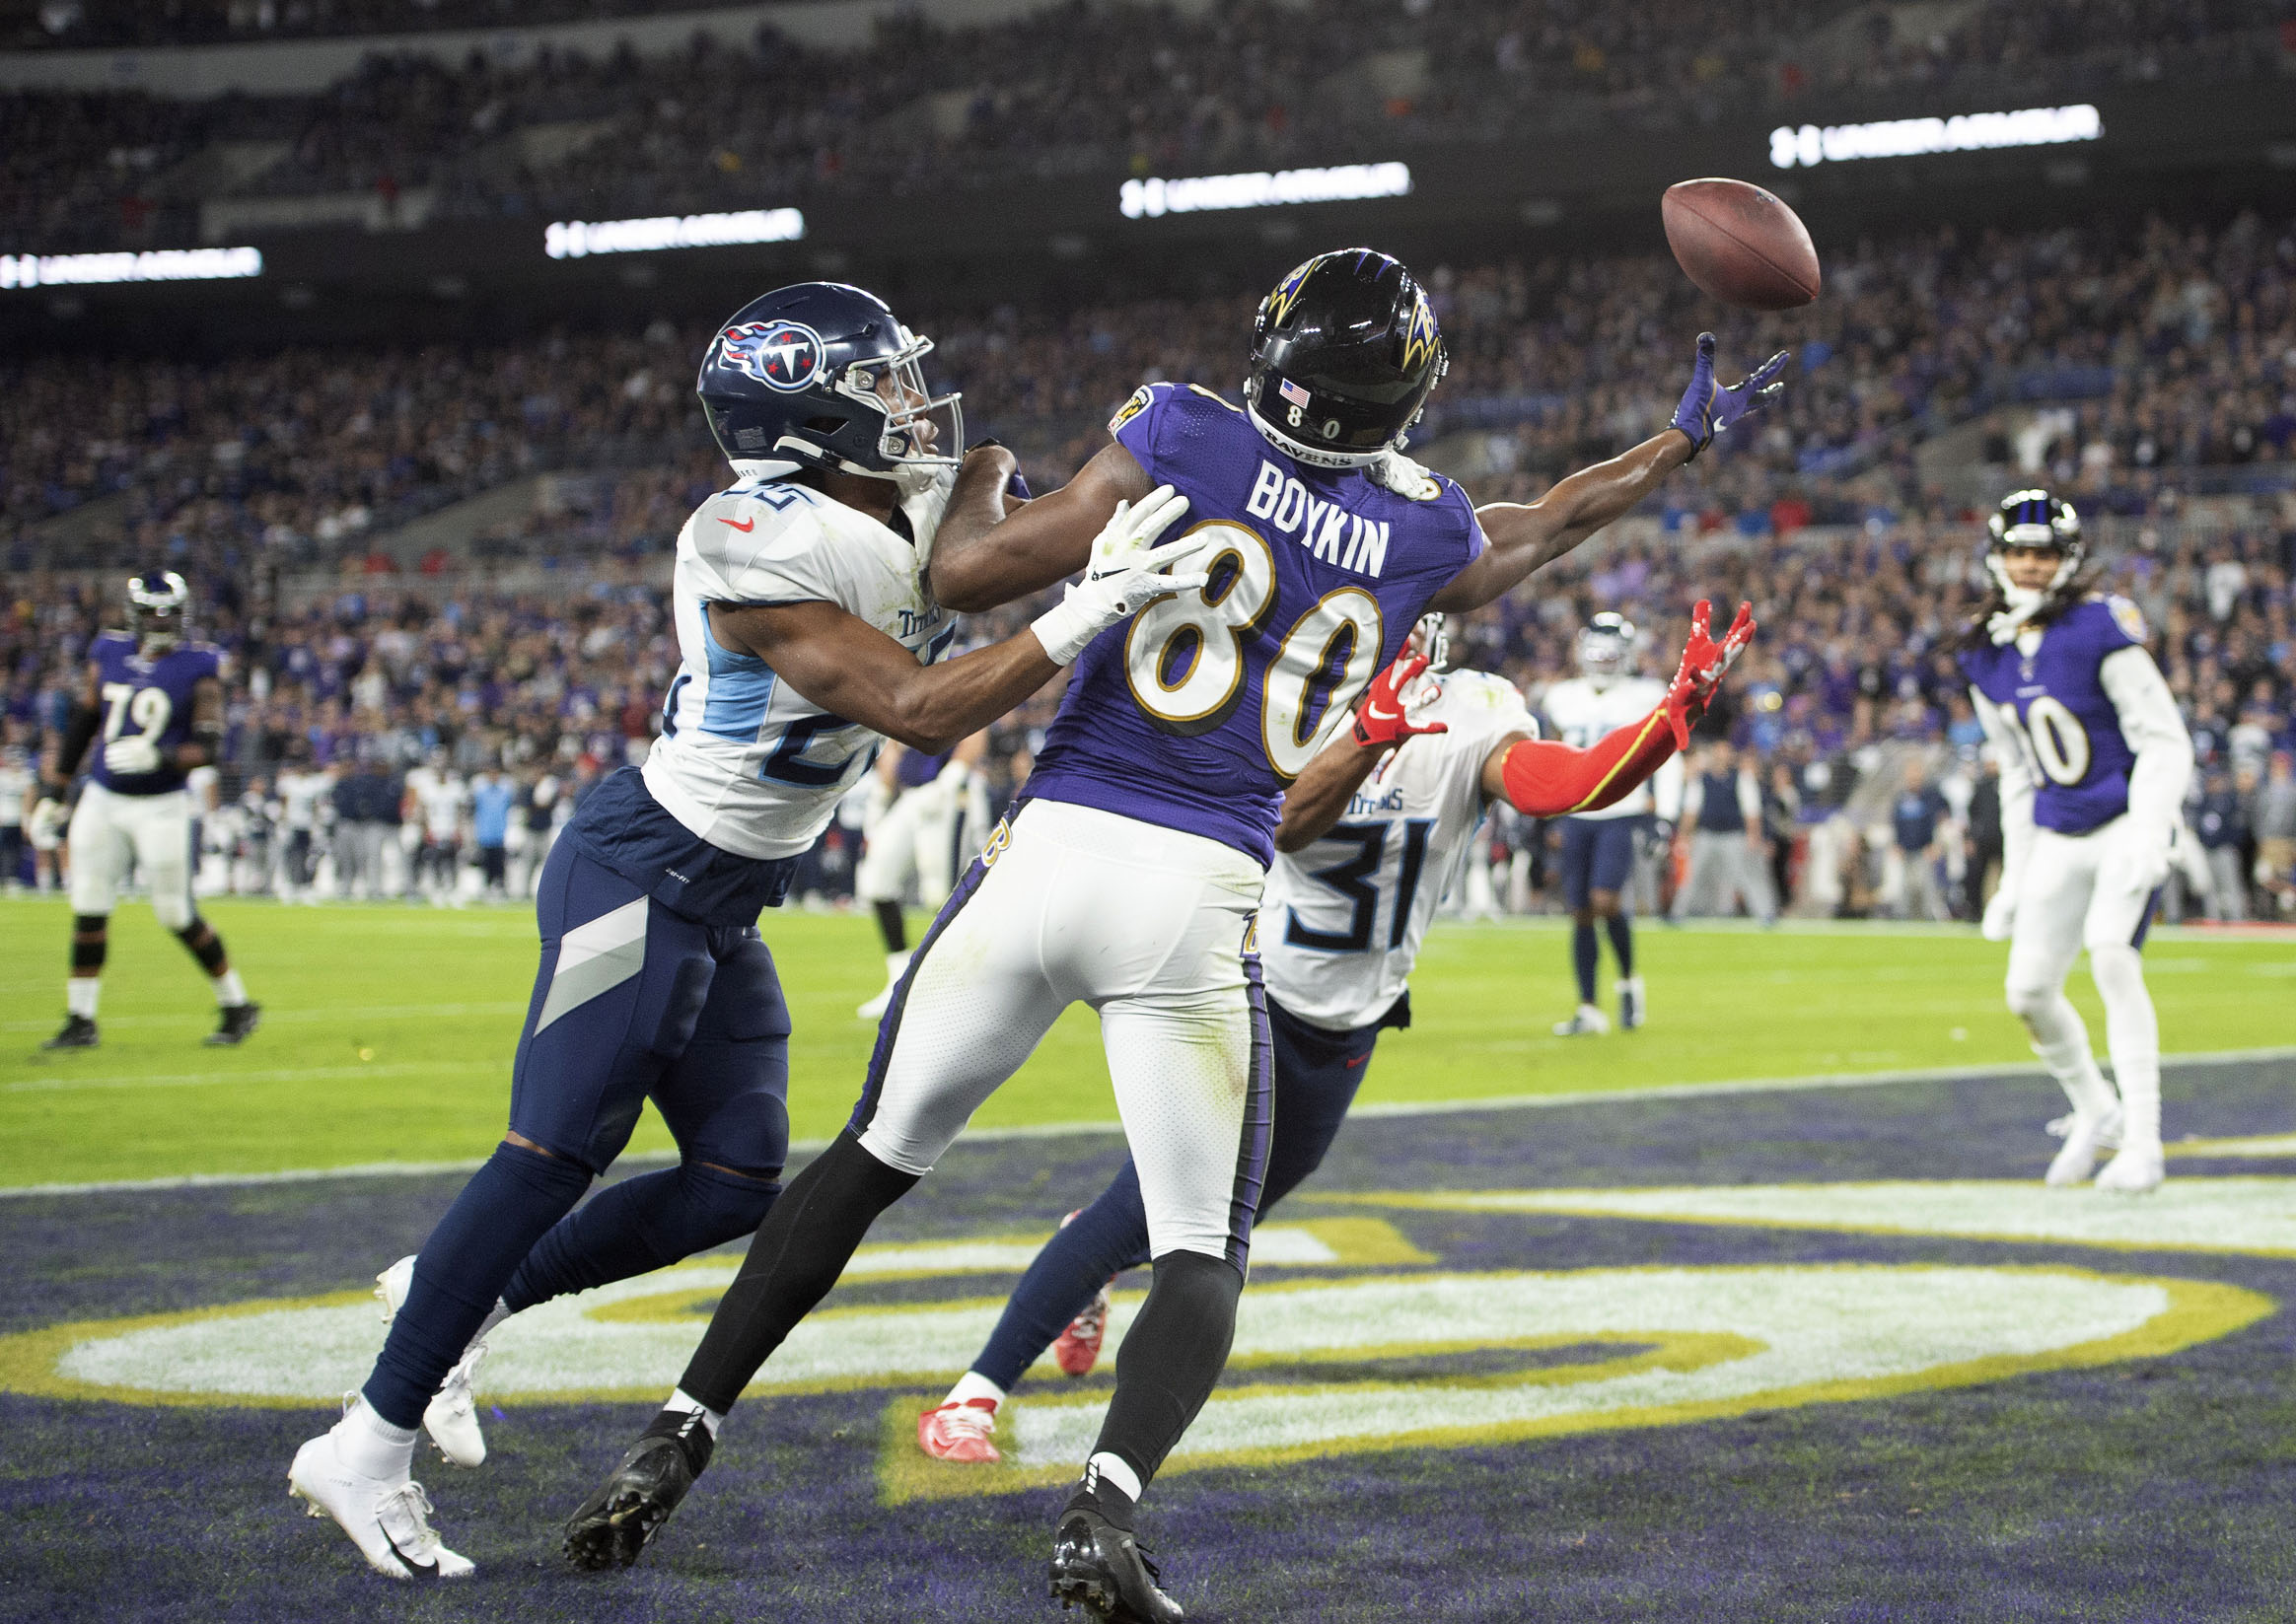 Miles Boykin Looking to Take Next Step After Mostly Quiet Rookie Season